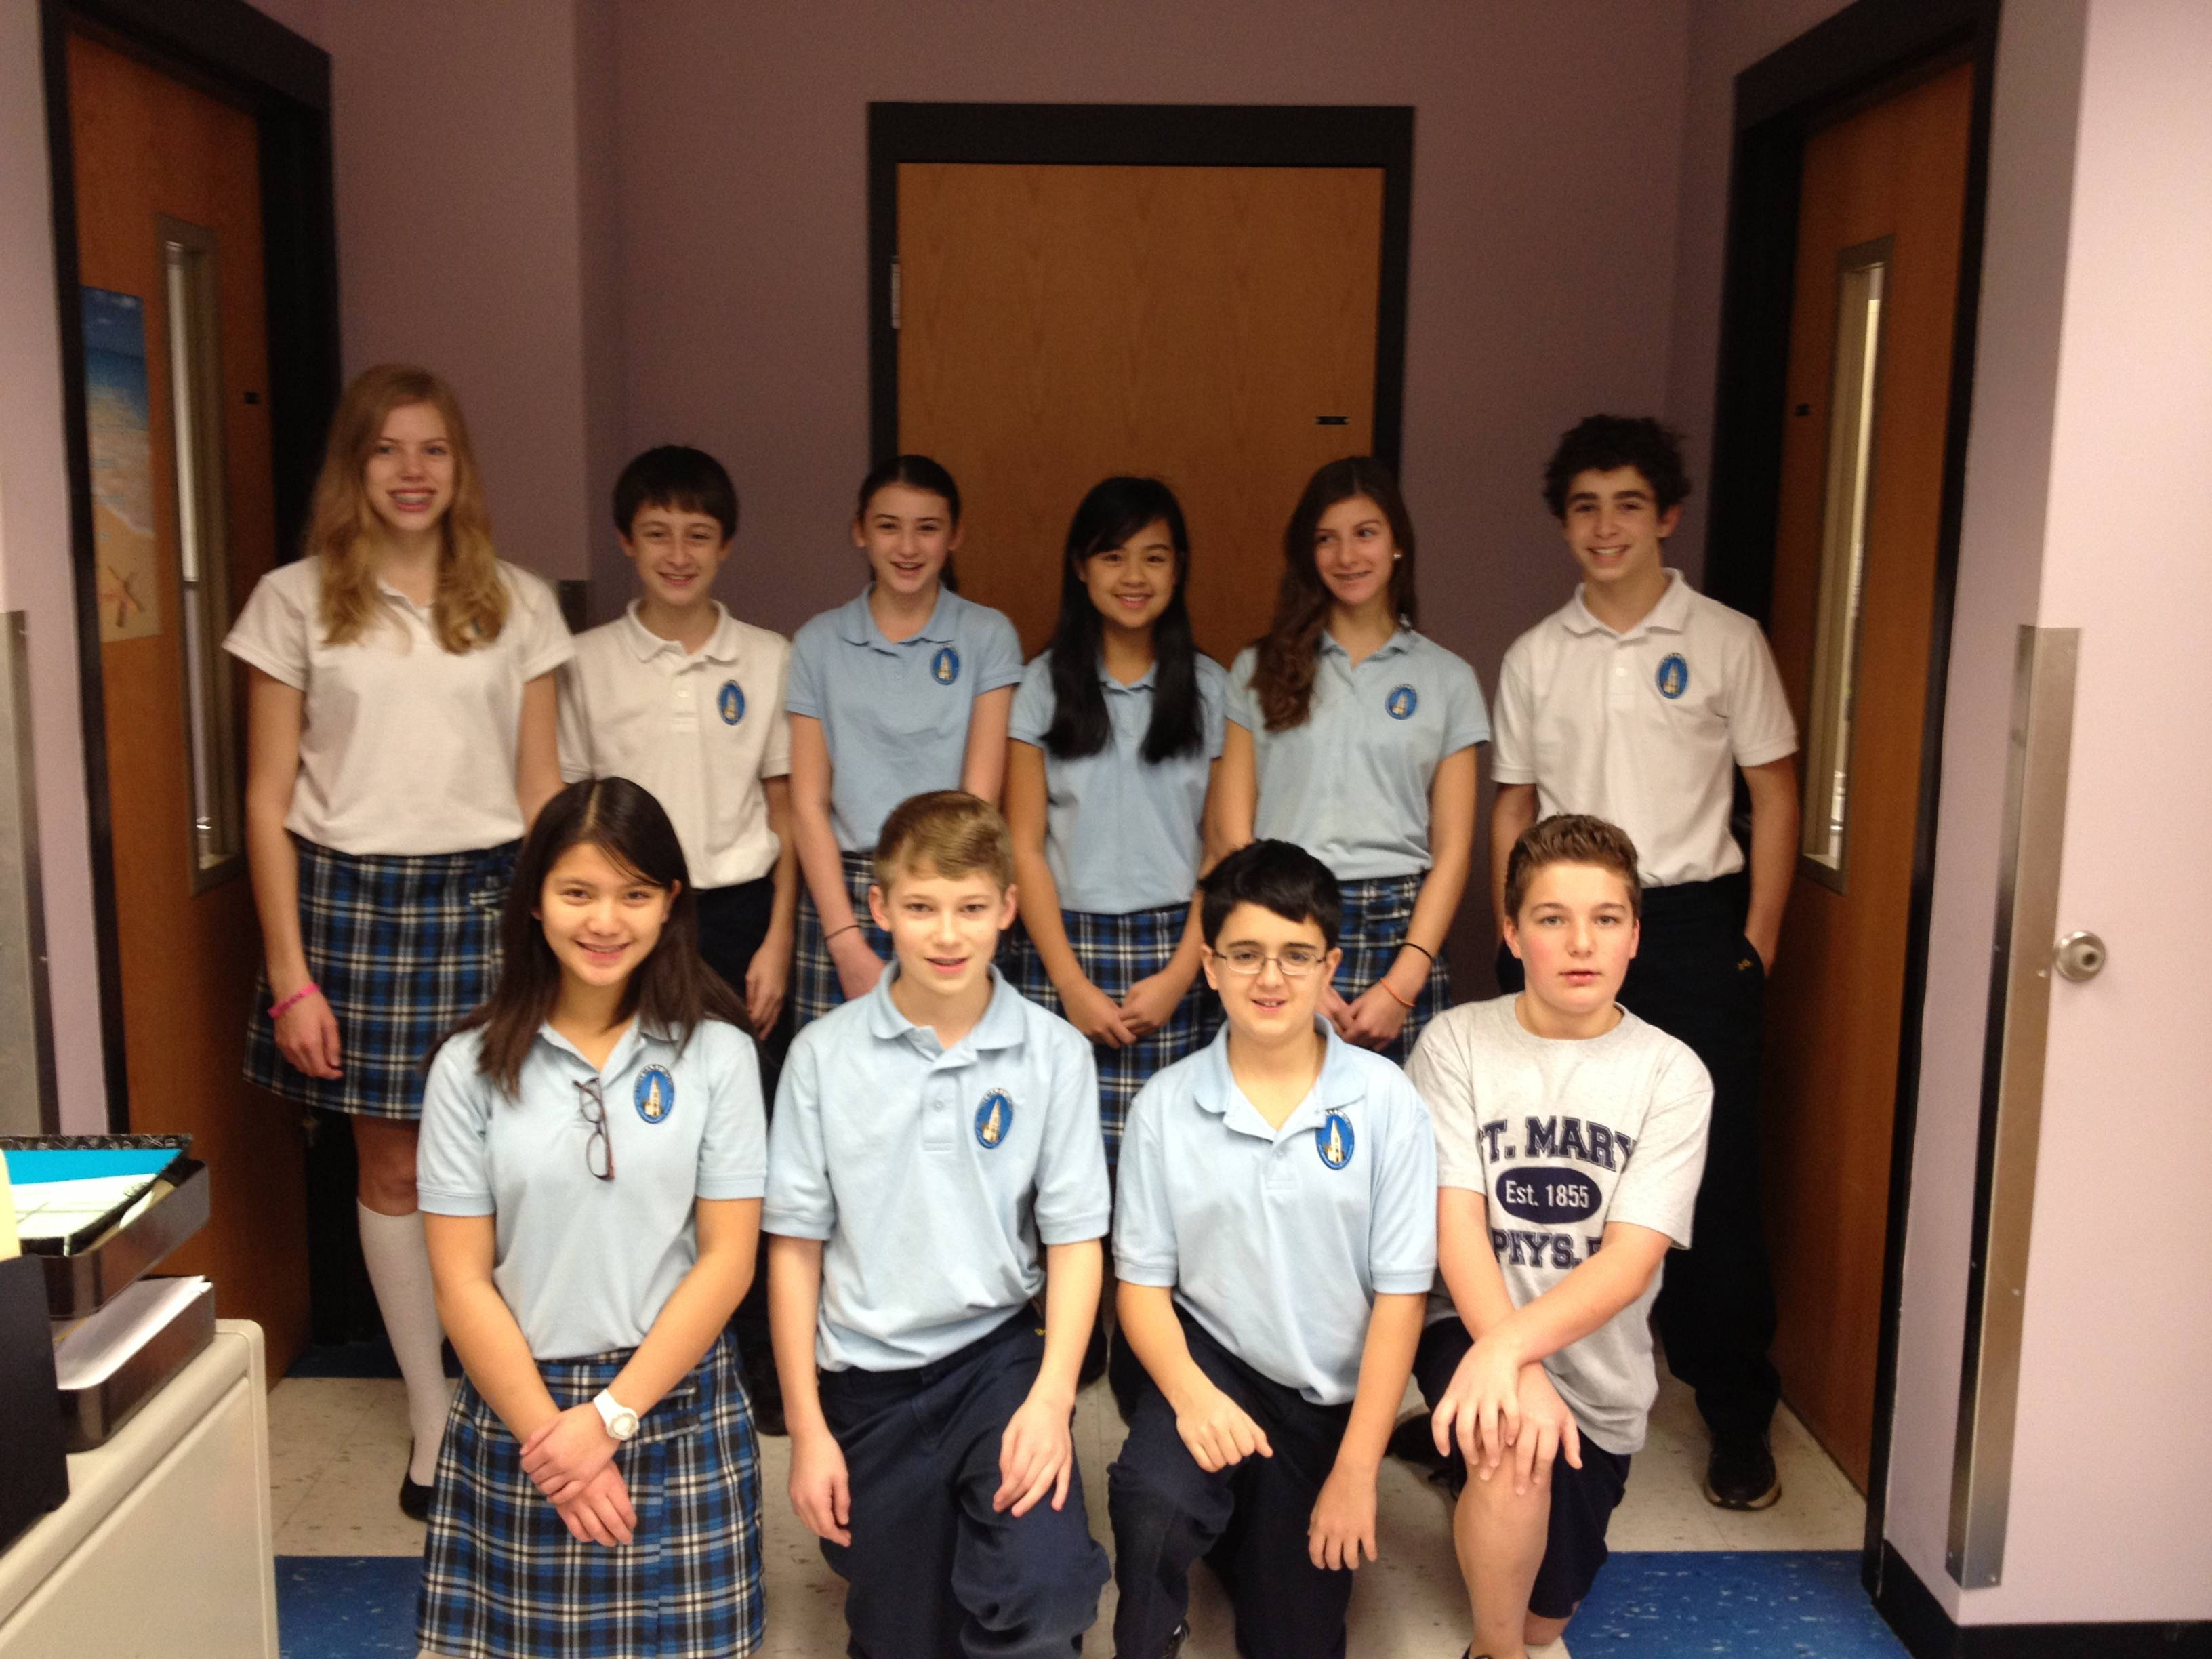 Saint Mary BG 7th grade science fair winners